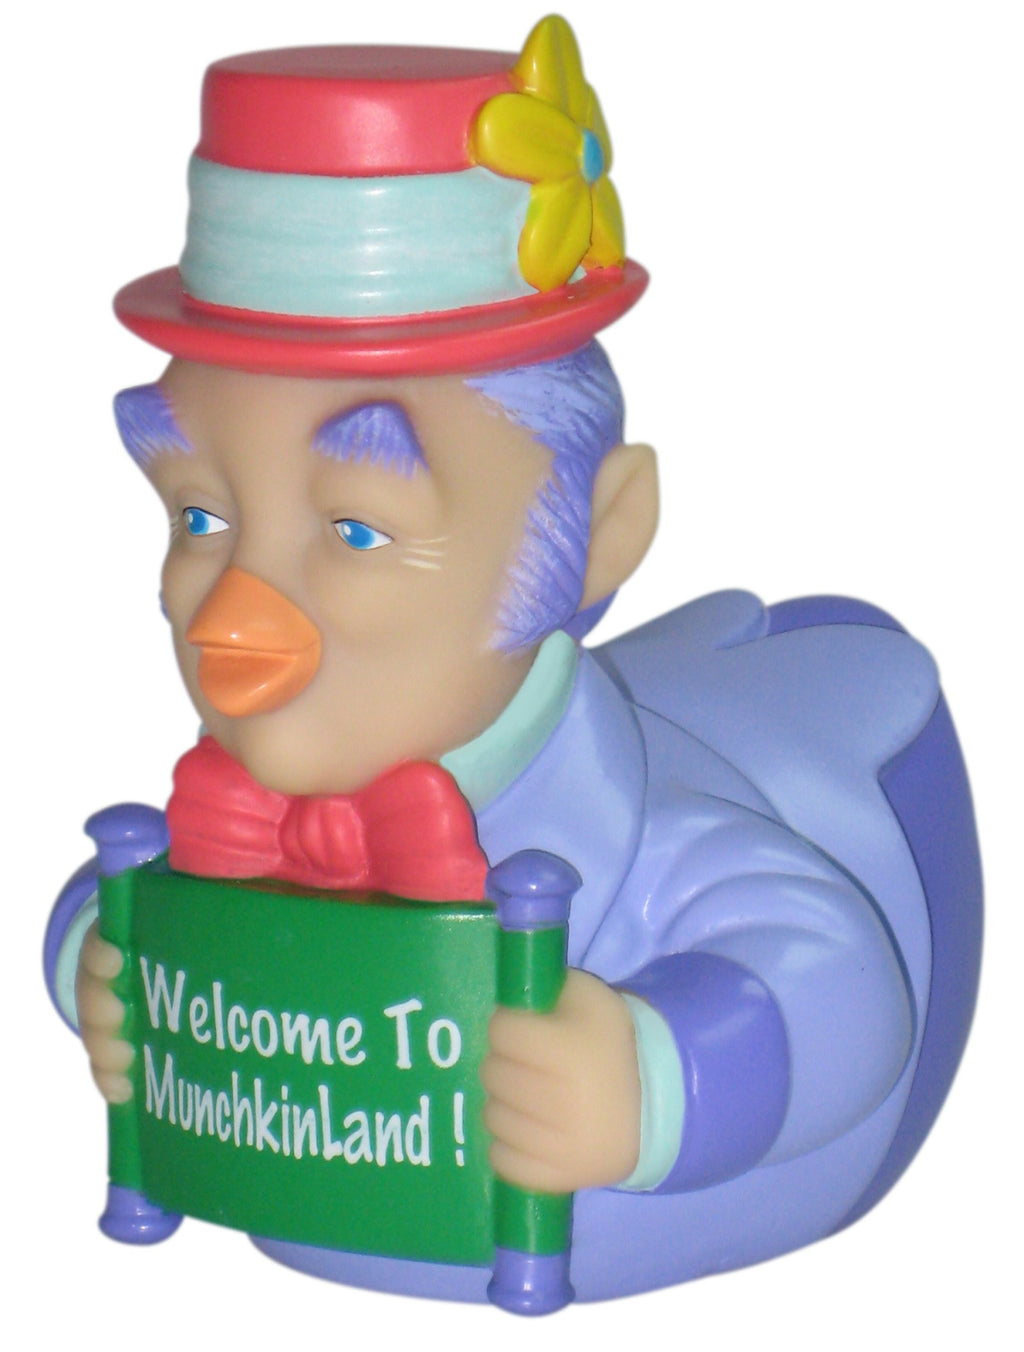 Munchkin Rubber Duck - By Celebriducks - Limited Edition